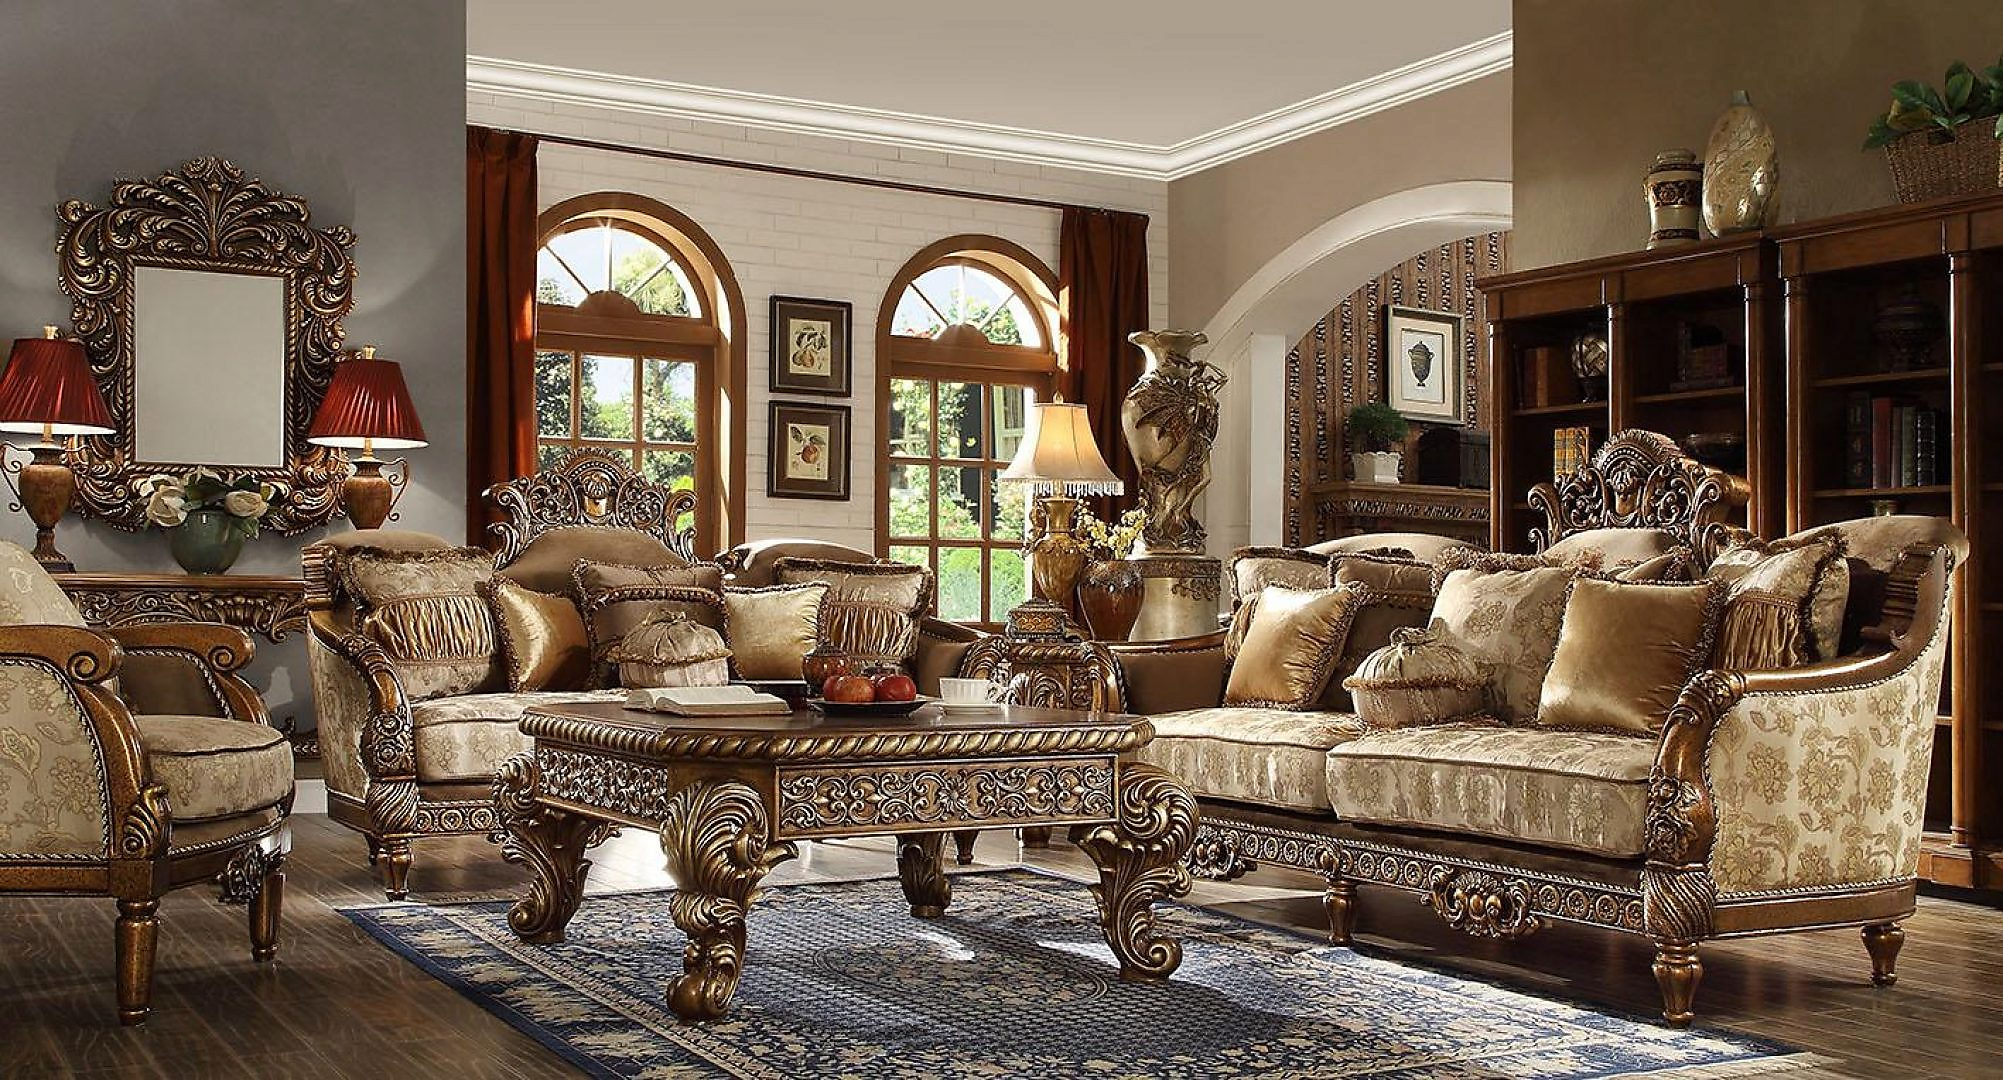 Traditional HD-610 Sofa Love Chair Coffee End Console Tables Mirror 8Pcs by Homey Design